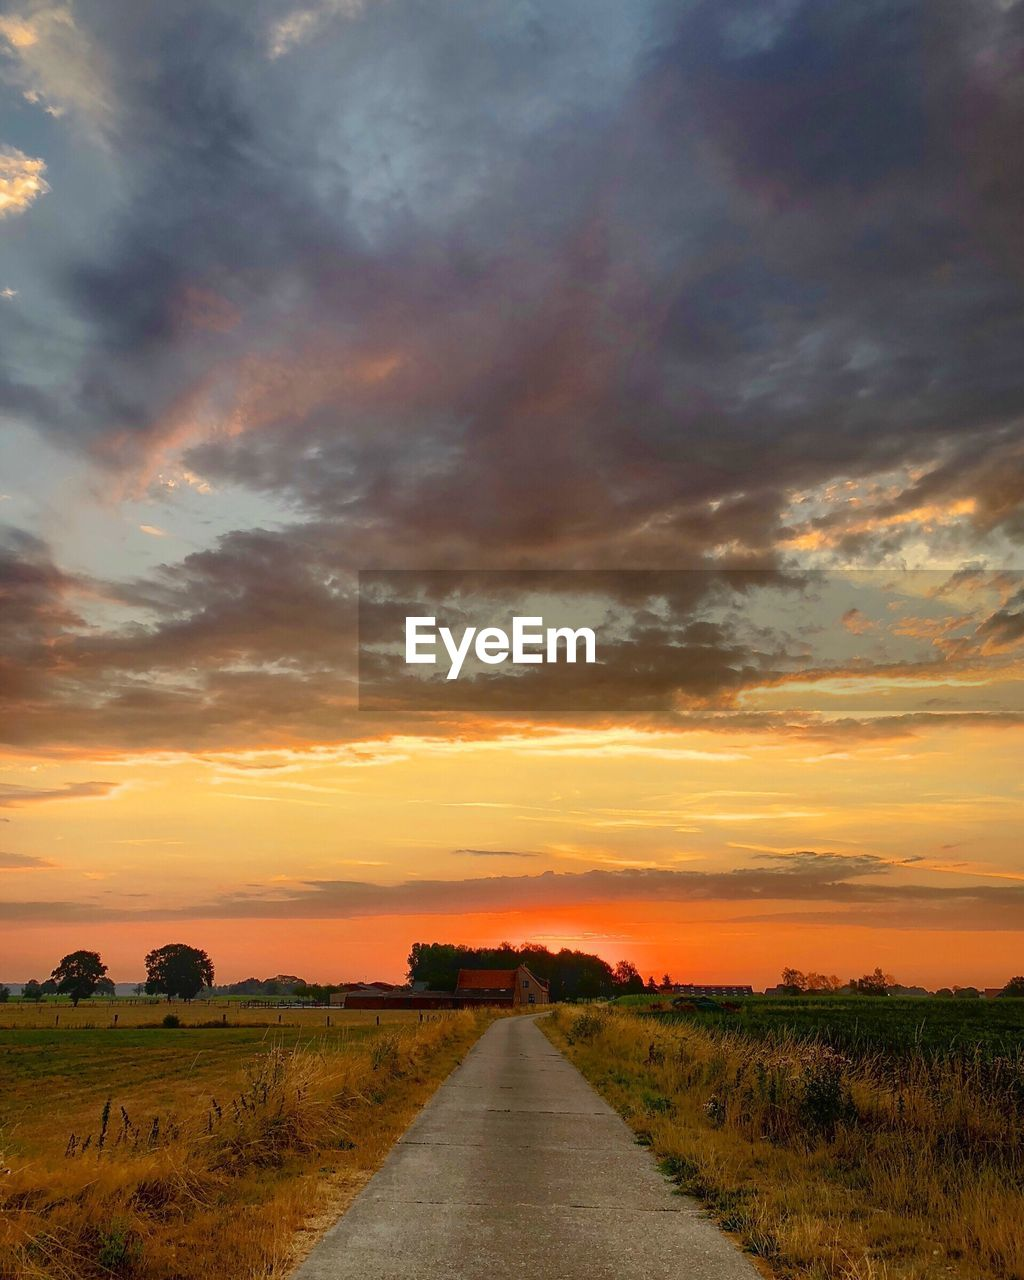 cloud - sky, sky, sunset, scenics - nature, landscape, environment, the way forward, field, beauty in nature, direction, plant, orange color, diminishing perspective, tranquility, nature, land, tranquil scene, grass, road, no people, outdoors